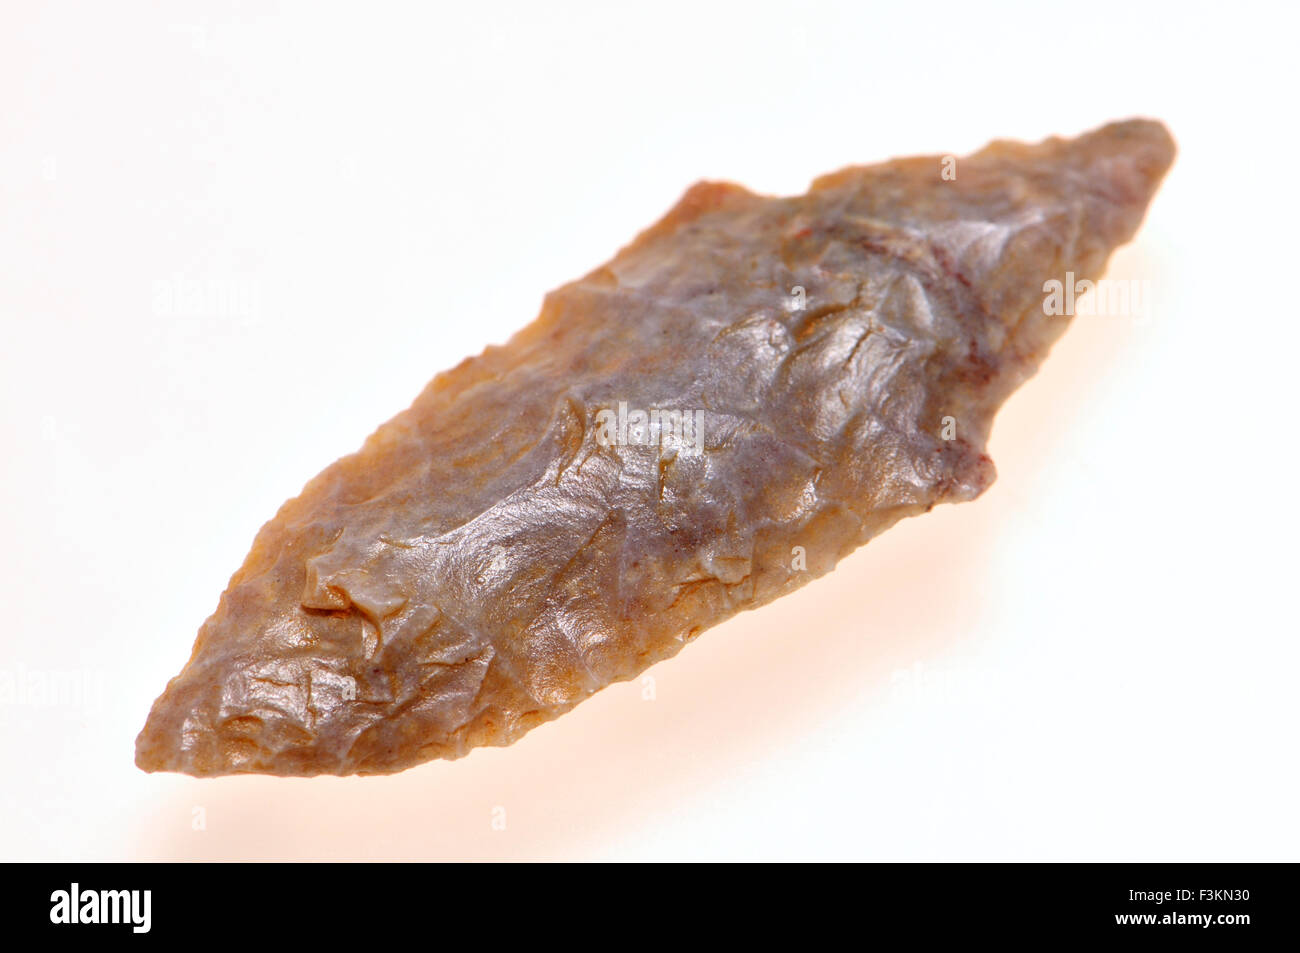 Neolithic flint arrowhead (Saharan Africa, c4000BC) 40mm long - Stock Image